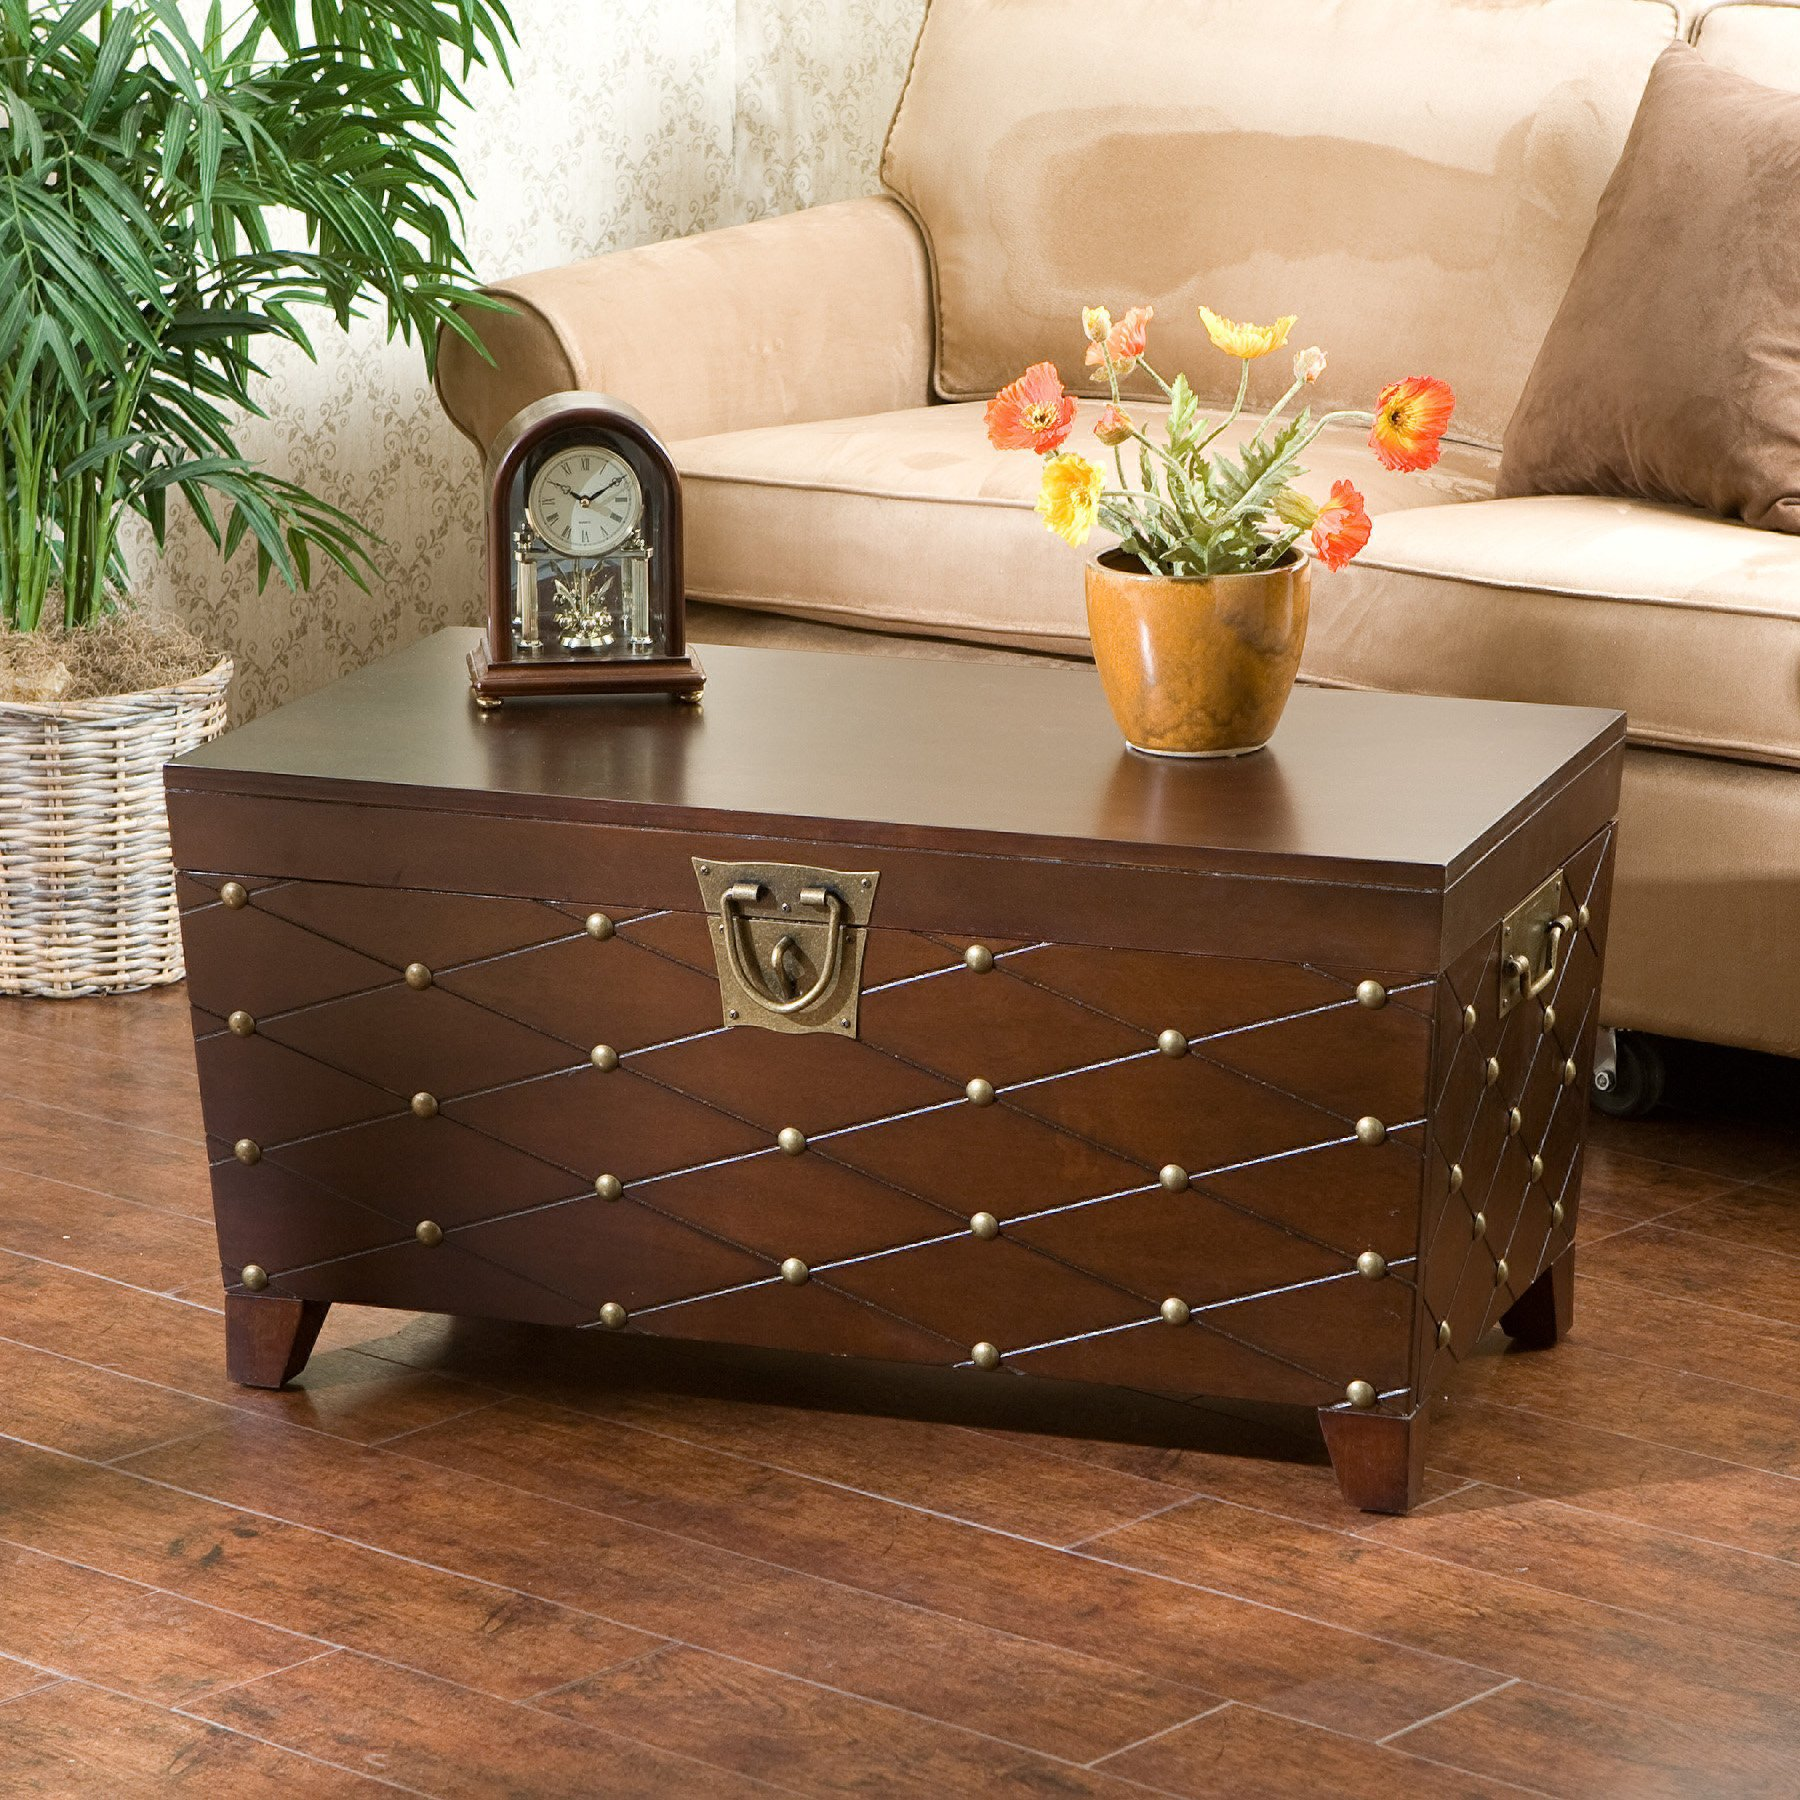 Tiny Chest Coffee Table